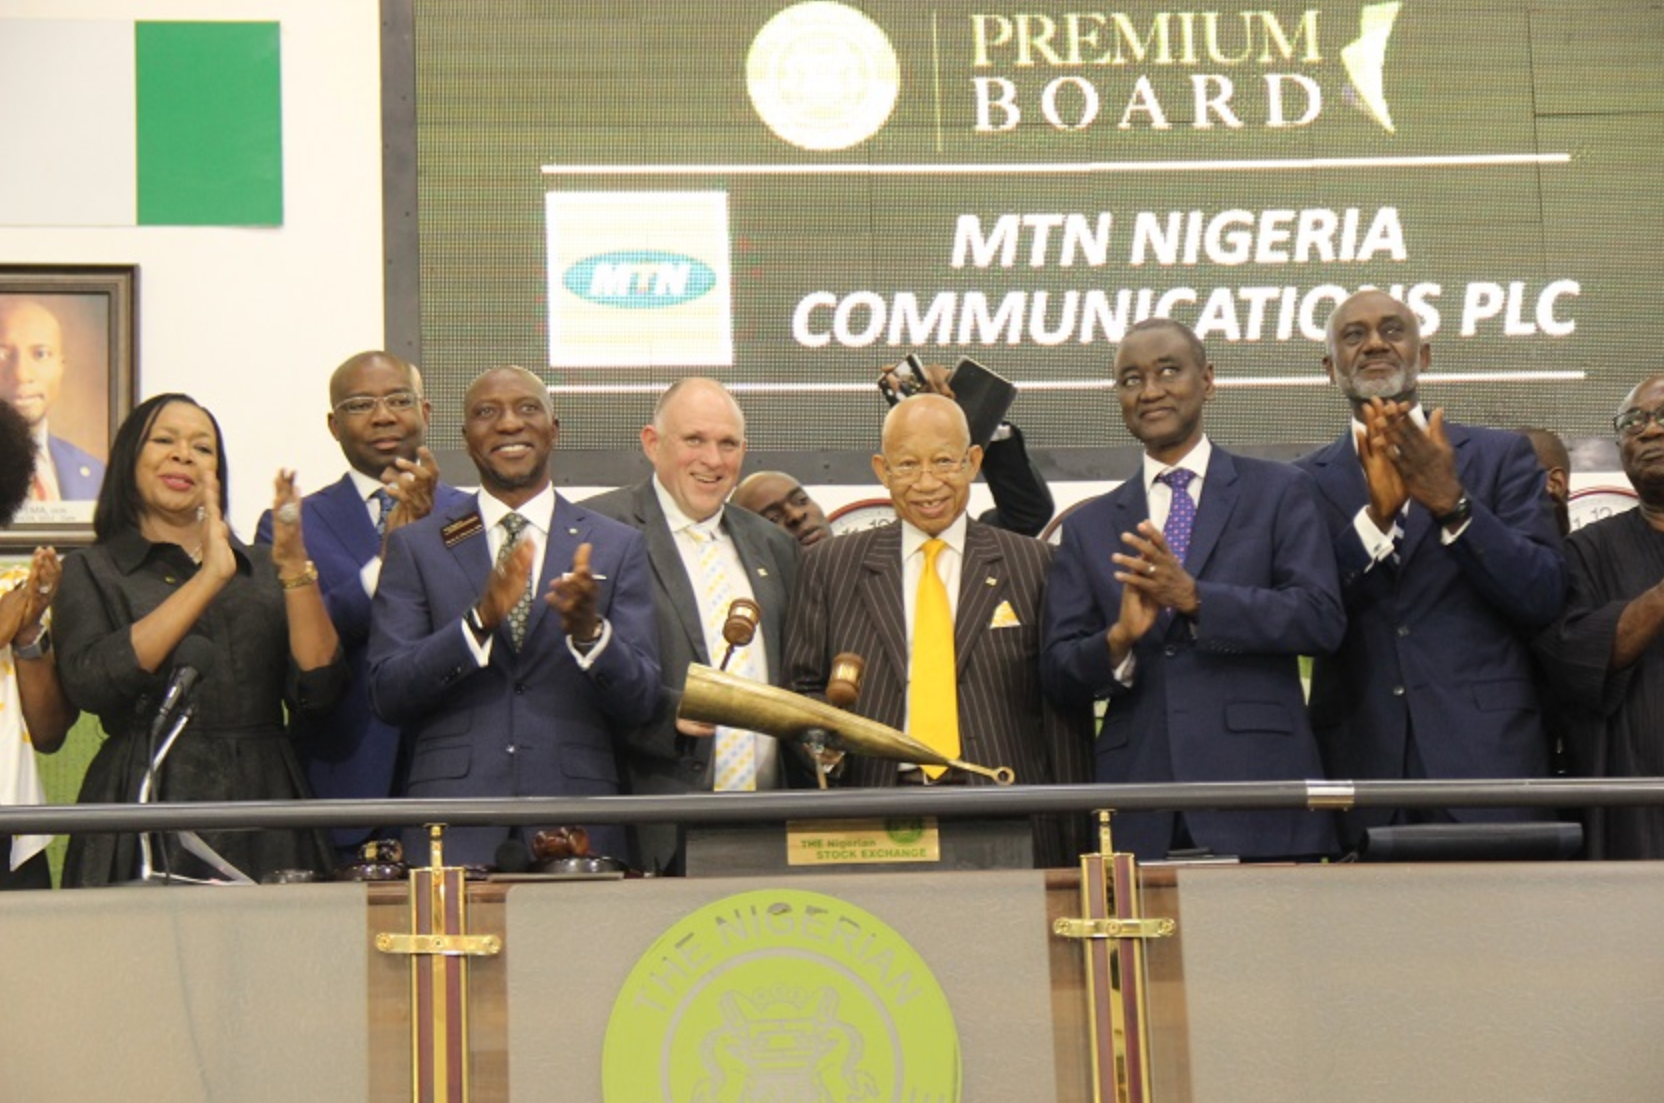 MTN Nigeria share price, MTN Nigeria court case, MTN Nigeria cyber attack, MTN Nigeria loses N700 million to cyber attack, MTN Nigeria denies cyber attack, MTN Nigeria financial statement, MTN Nigeria listing, EFCC raid MTN Nigeria, MTN Nigeria list on NSE, Nigerian Stock Exchange, MTN AI for Mobile Money